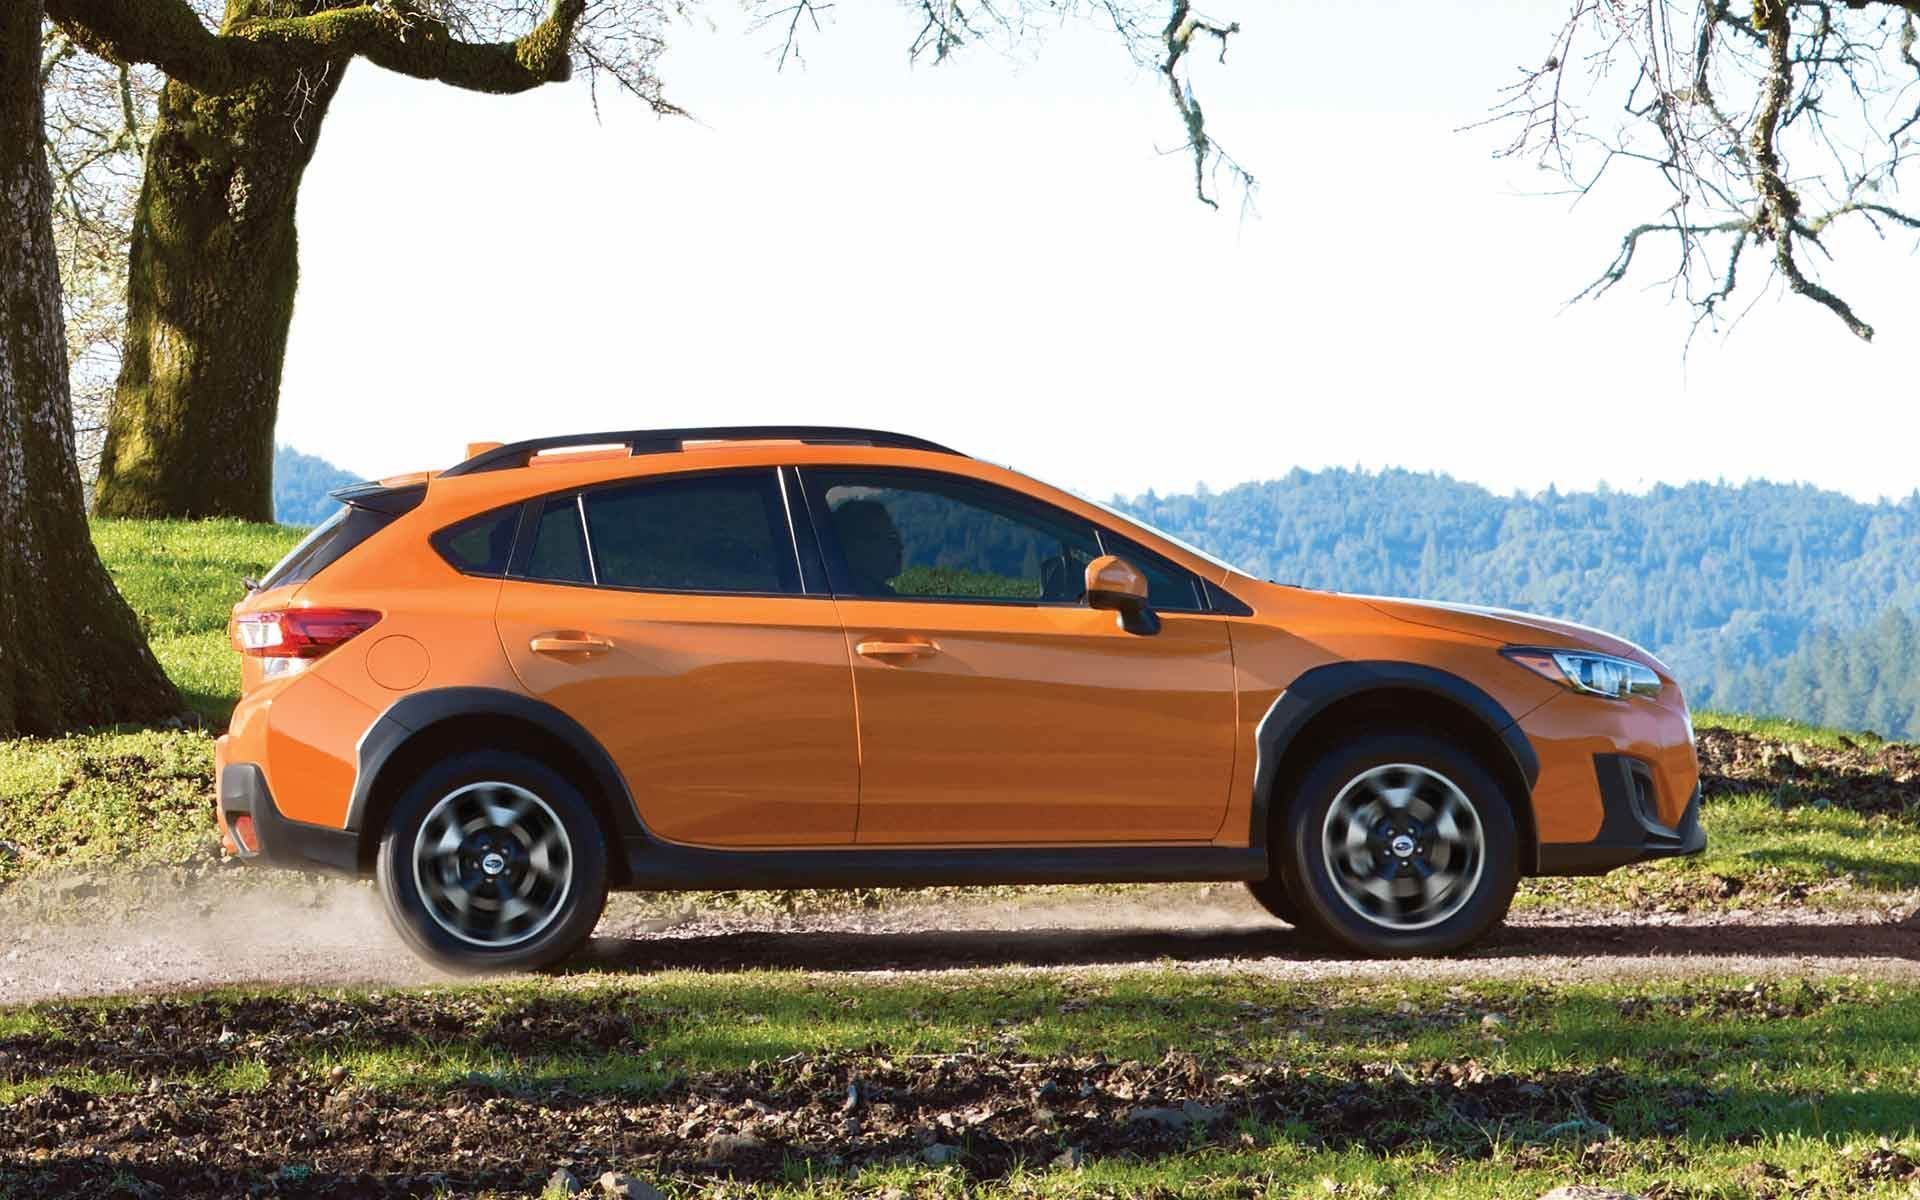 2018 Subaru Crosstrek Subaru Crosstrek Subaru Dream Cars